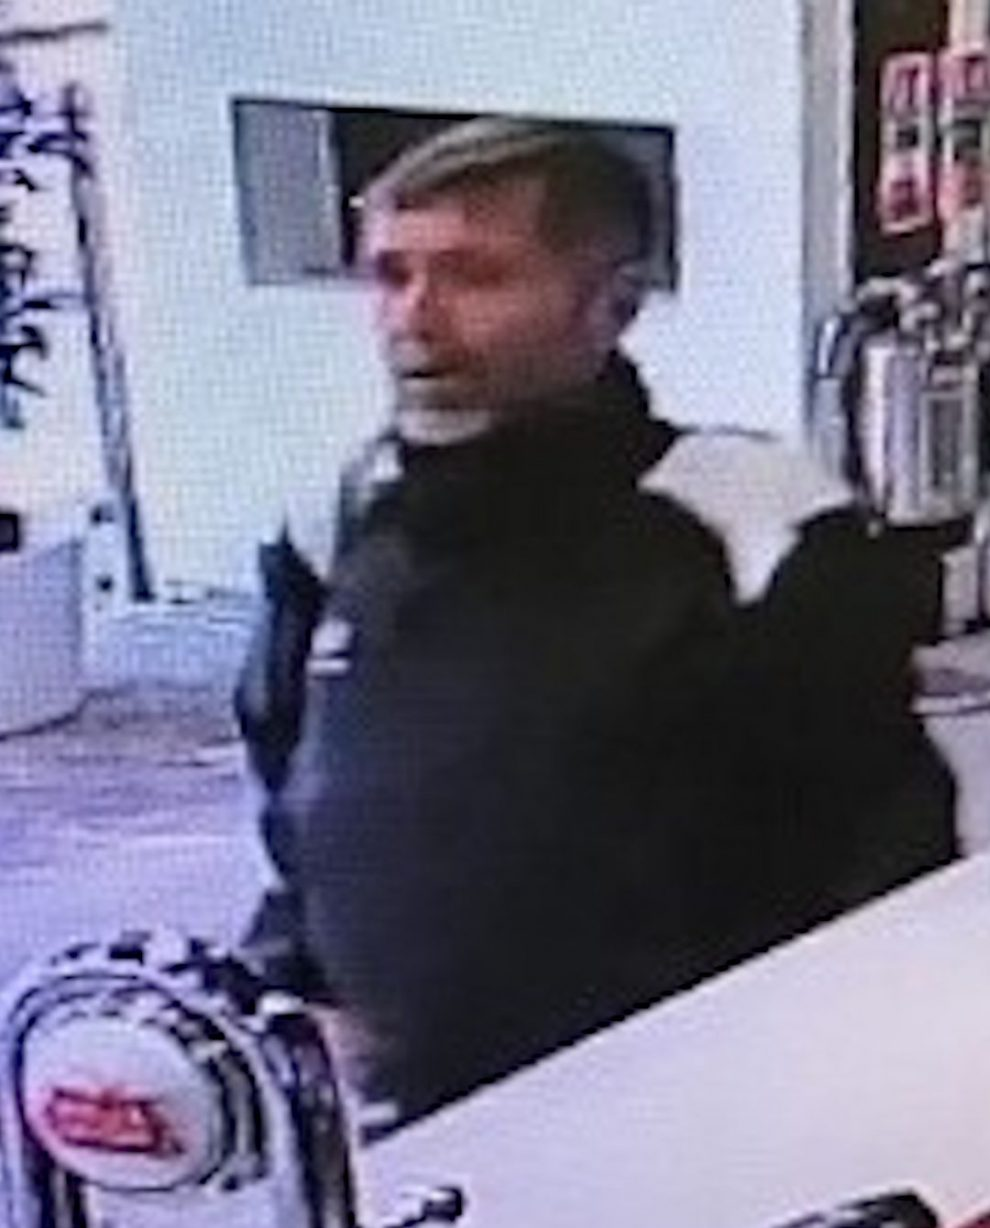 Search for missing Graham Pearson last seen in Eastbourne